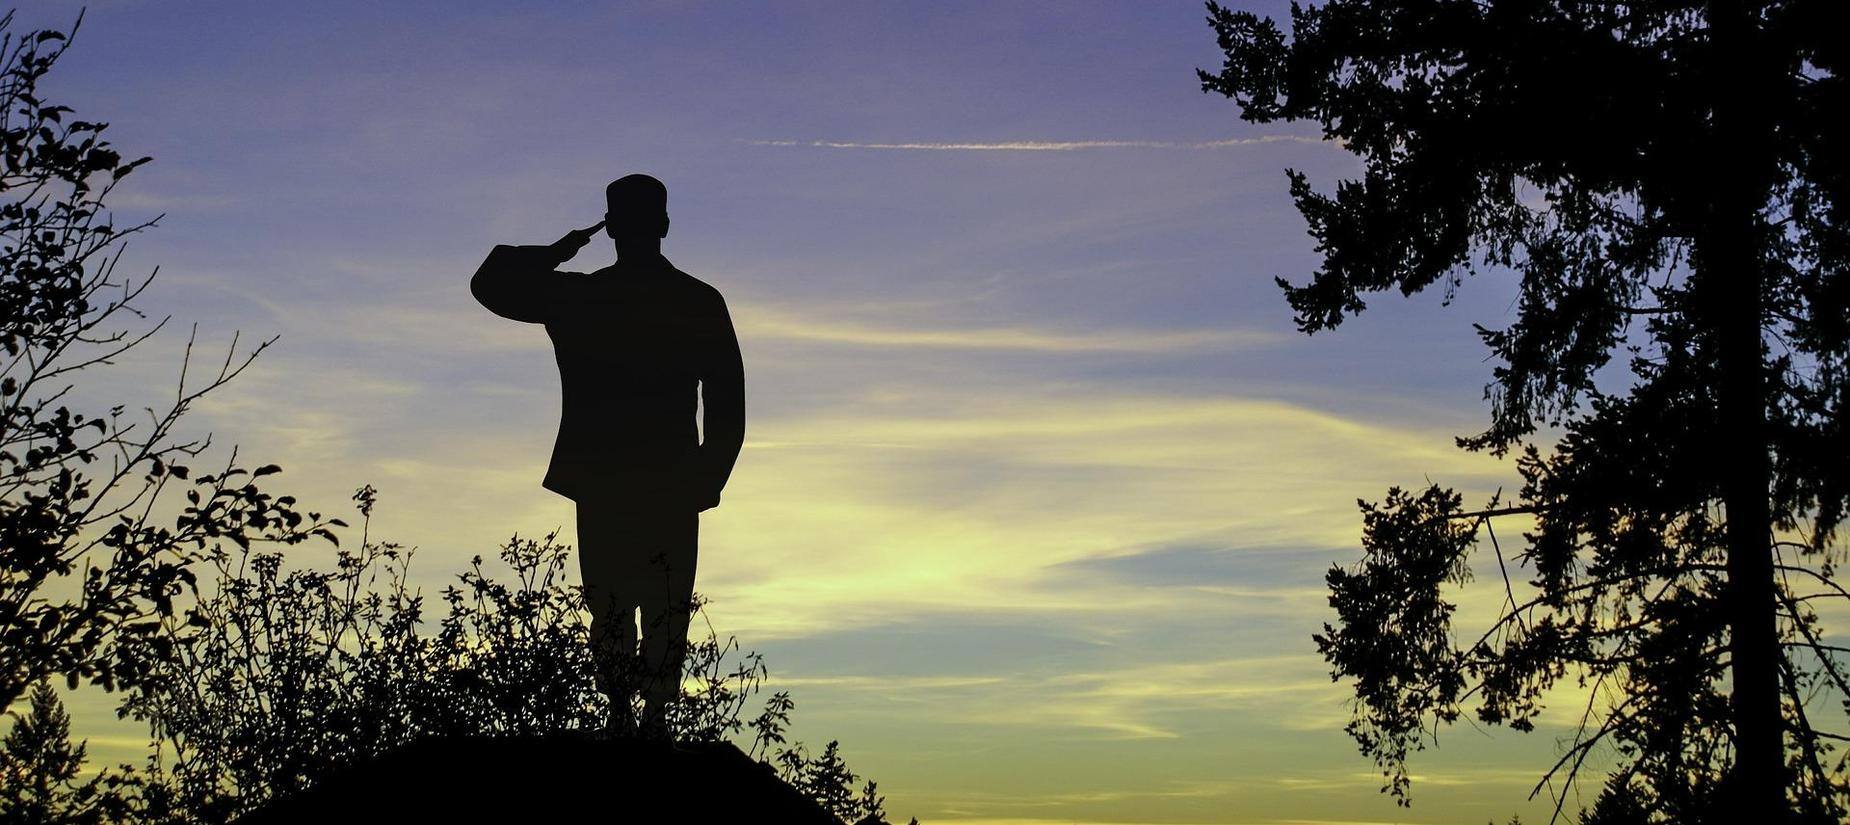 silhouette of a solider with the bright blue sky around him